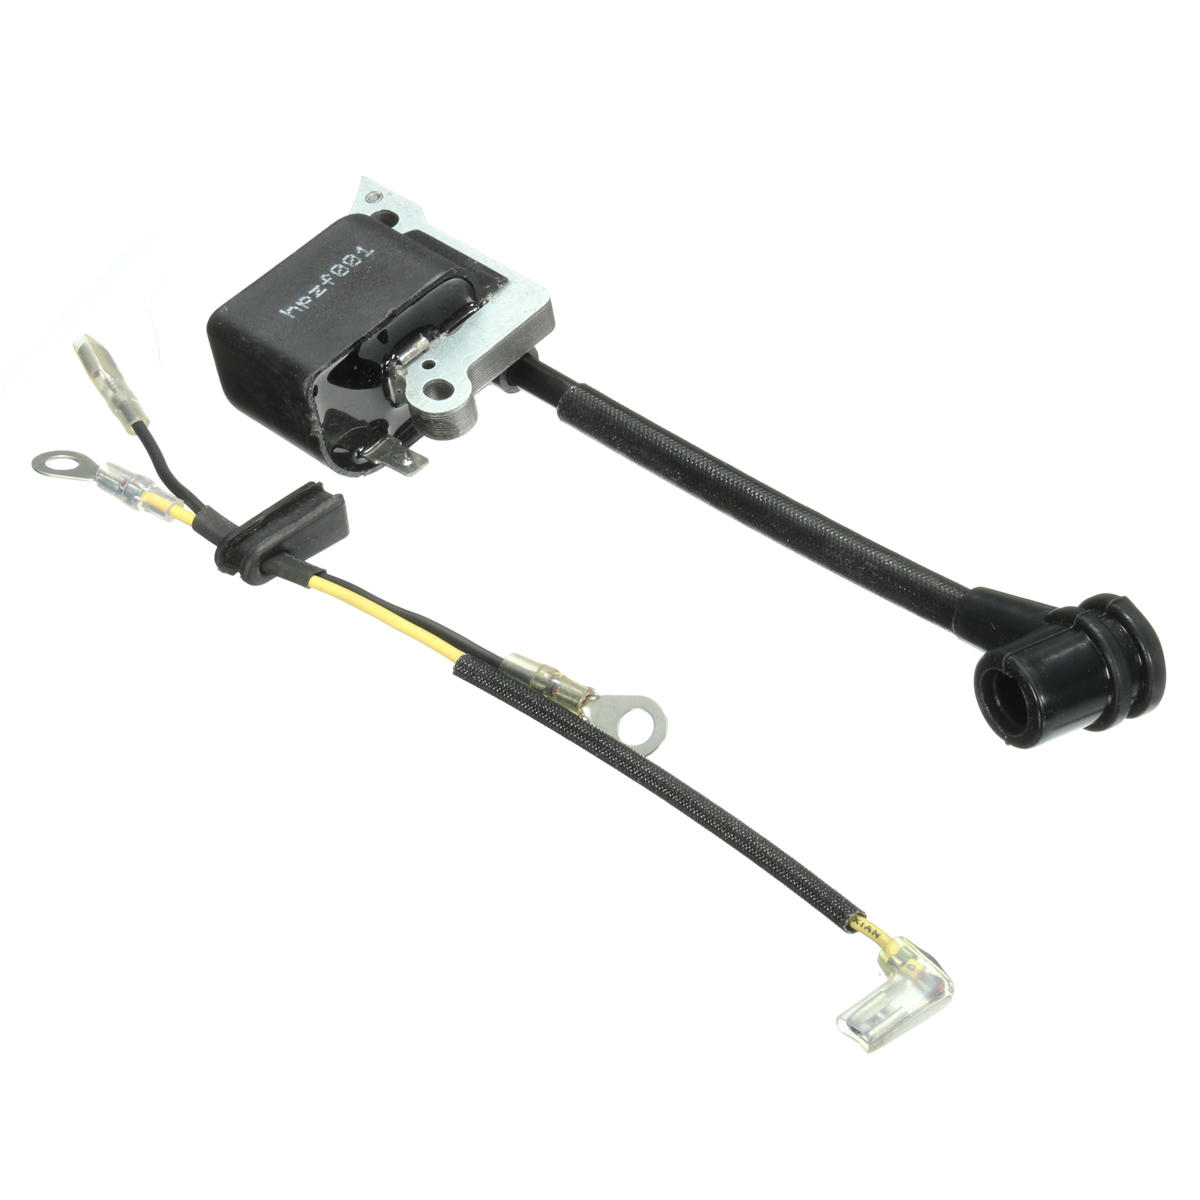 Ignition Coil For Husqvarna 136 137 141 23 235 240 26 36 41